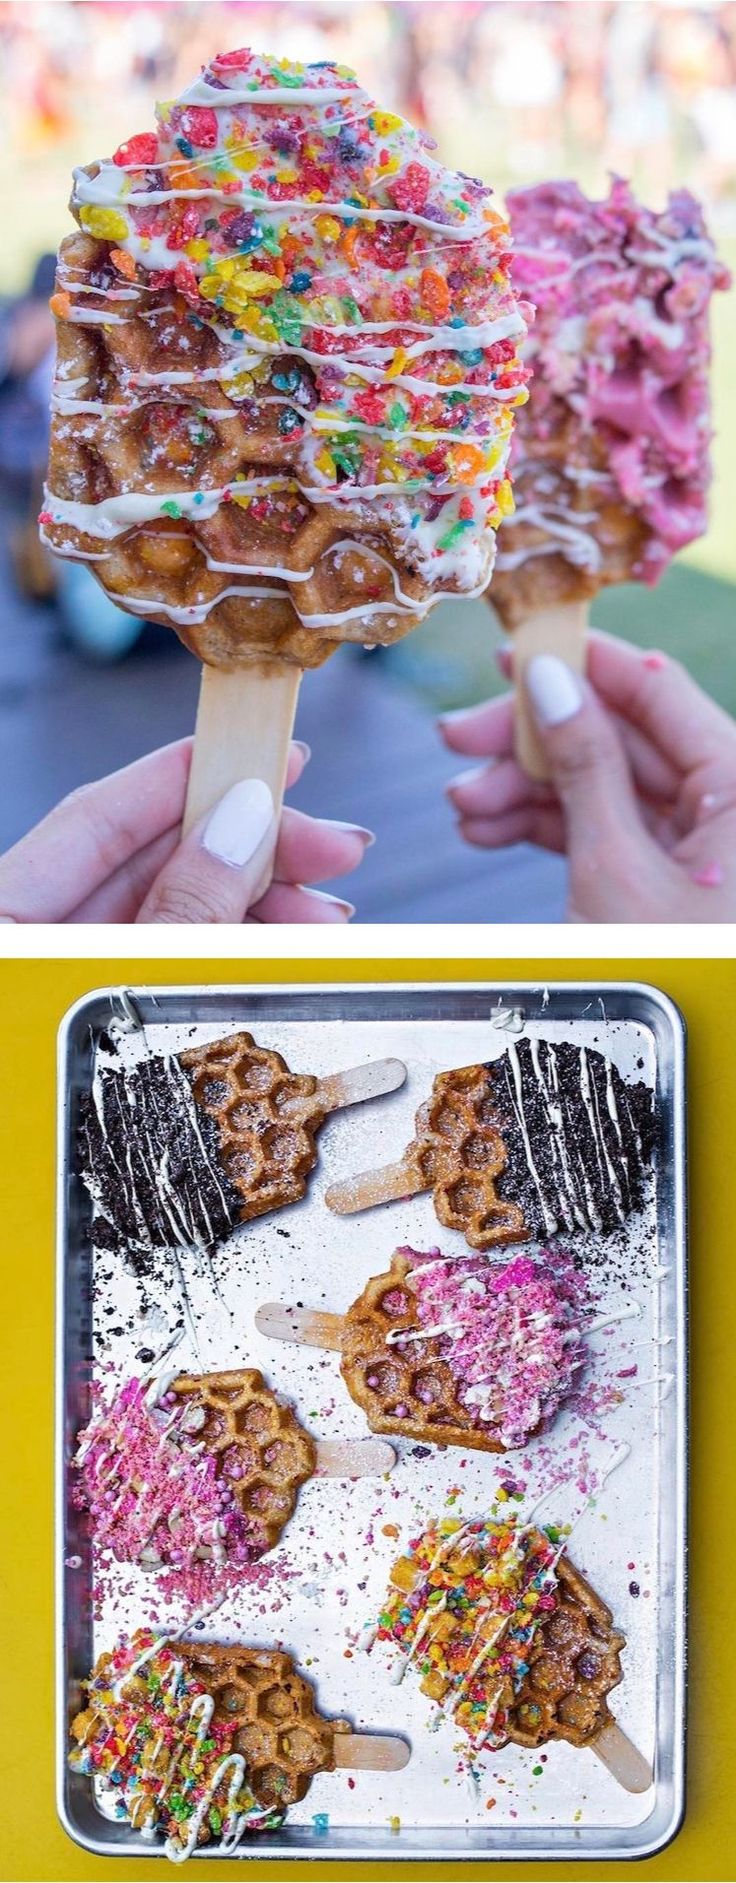 """Waffle Pops"" are the new sweets-on-a-stick that are giving Cake Pops a run for their money."